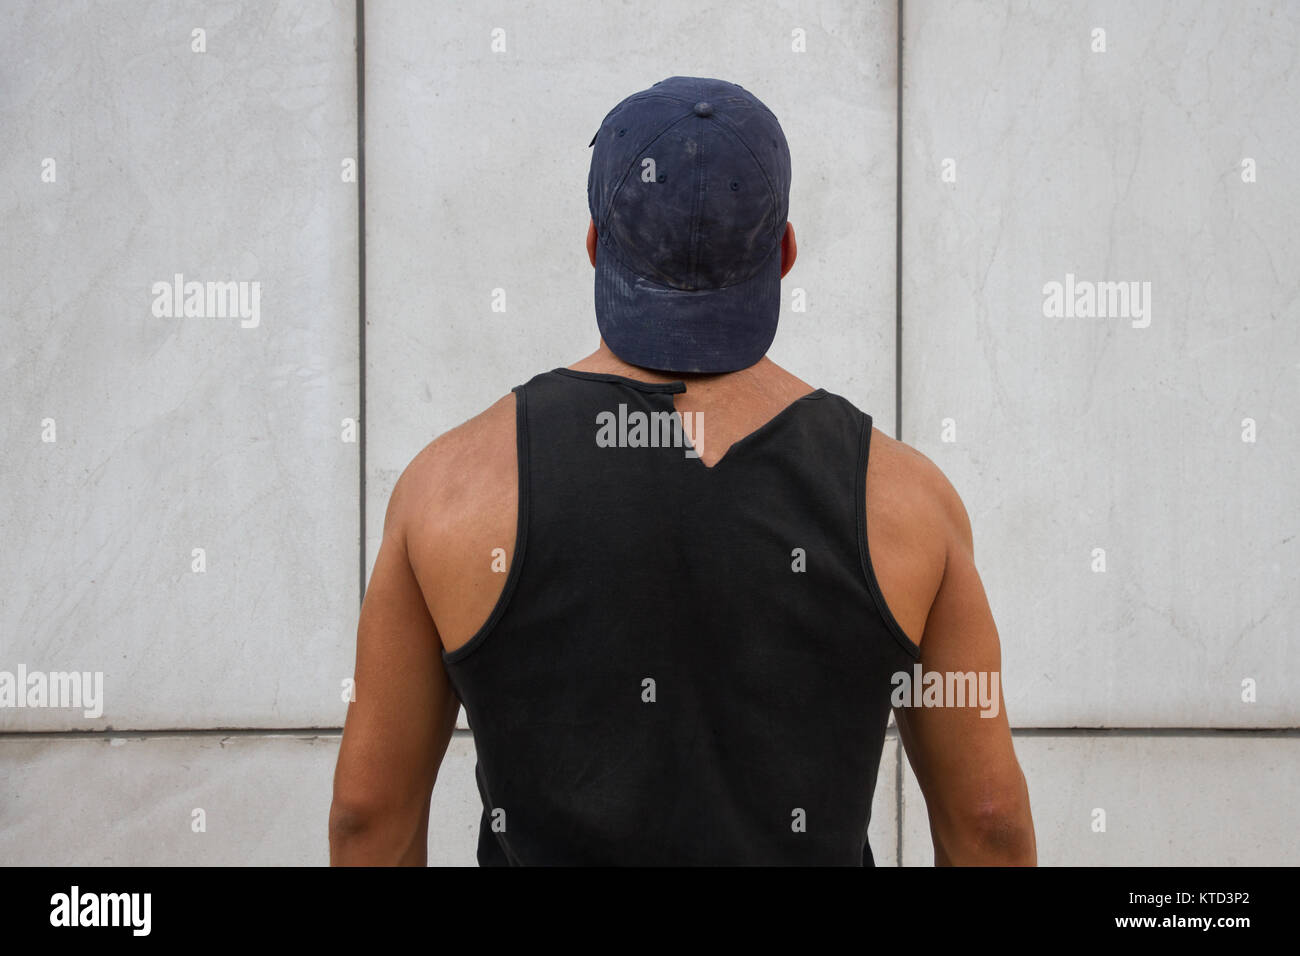 7ac1e67a7eef6 Black Tank Top Stock Photos   Black Tank Top Stock Images - Alamy